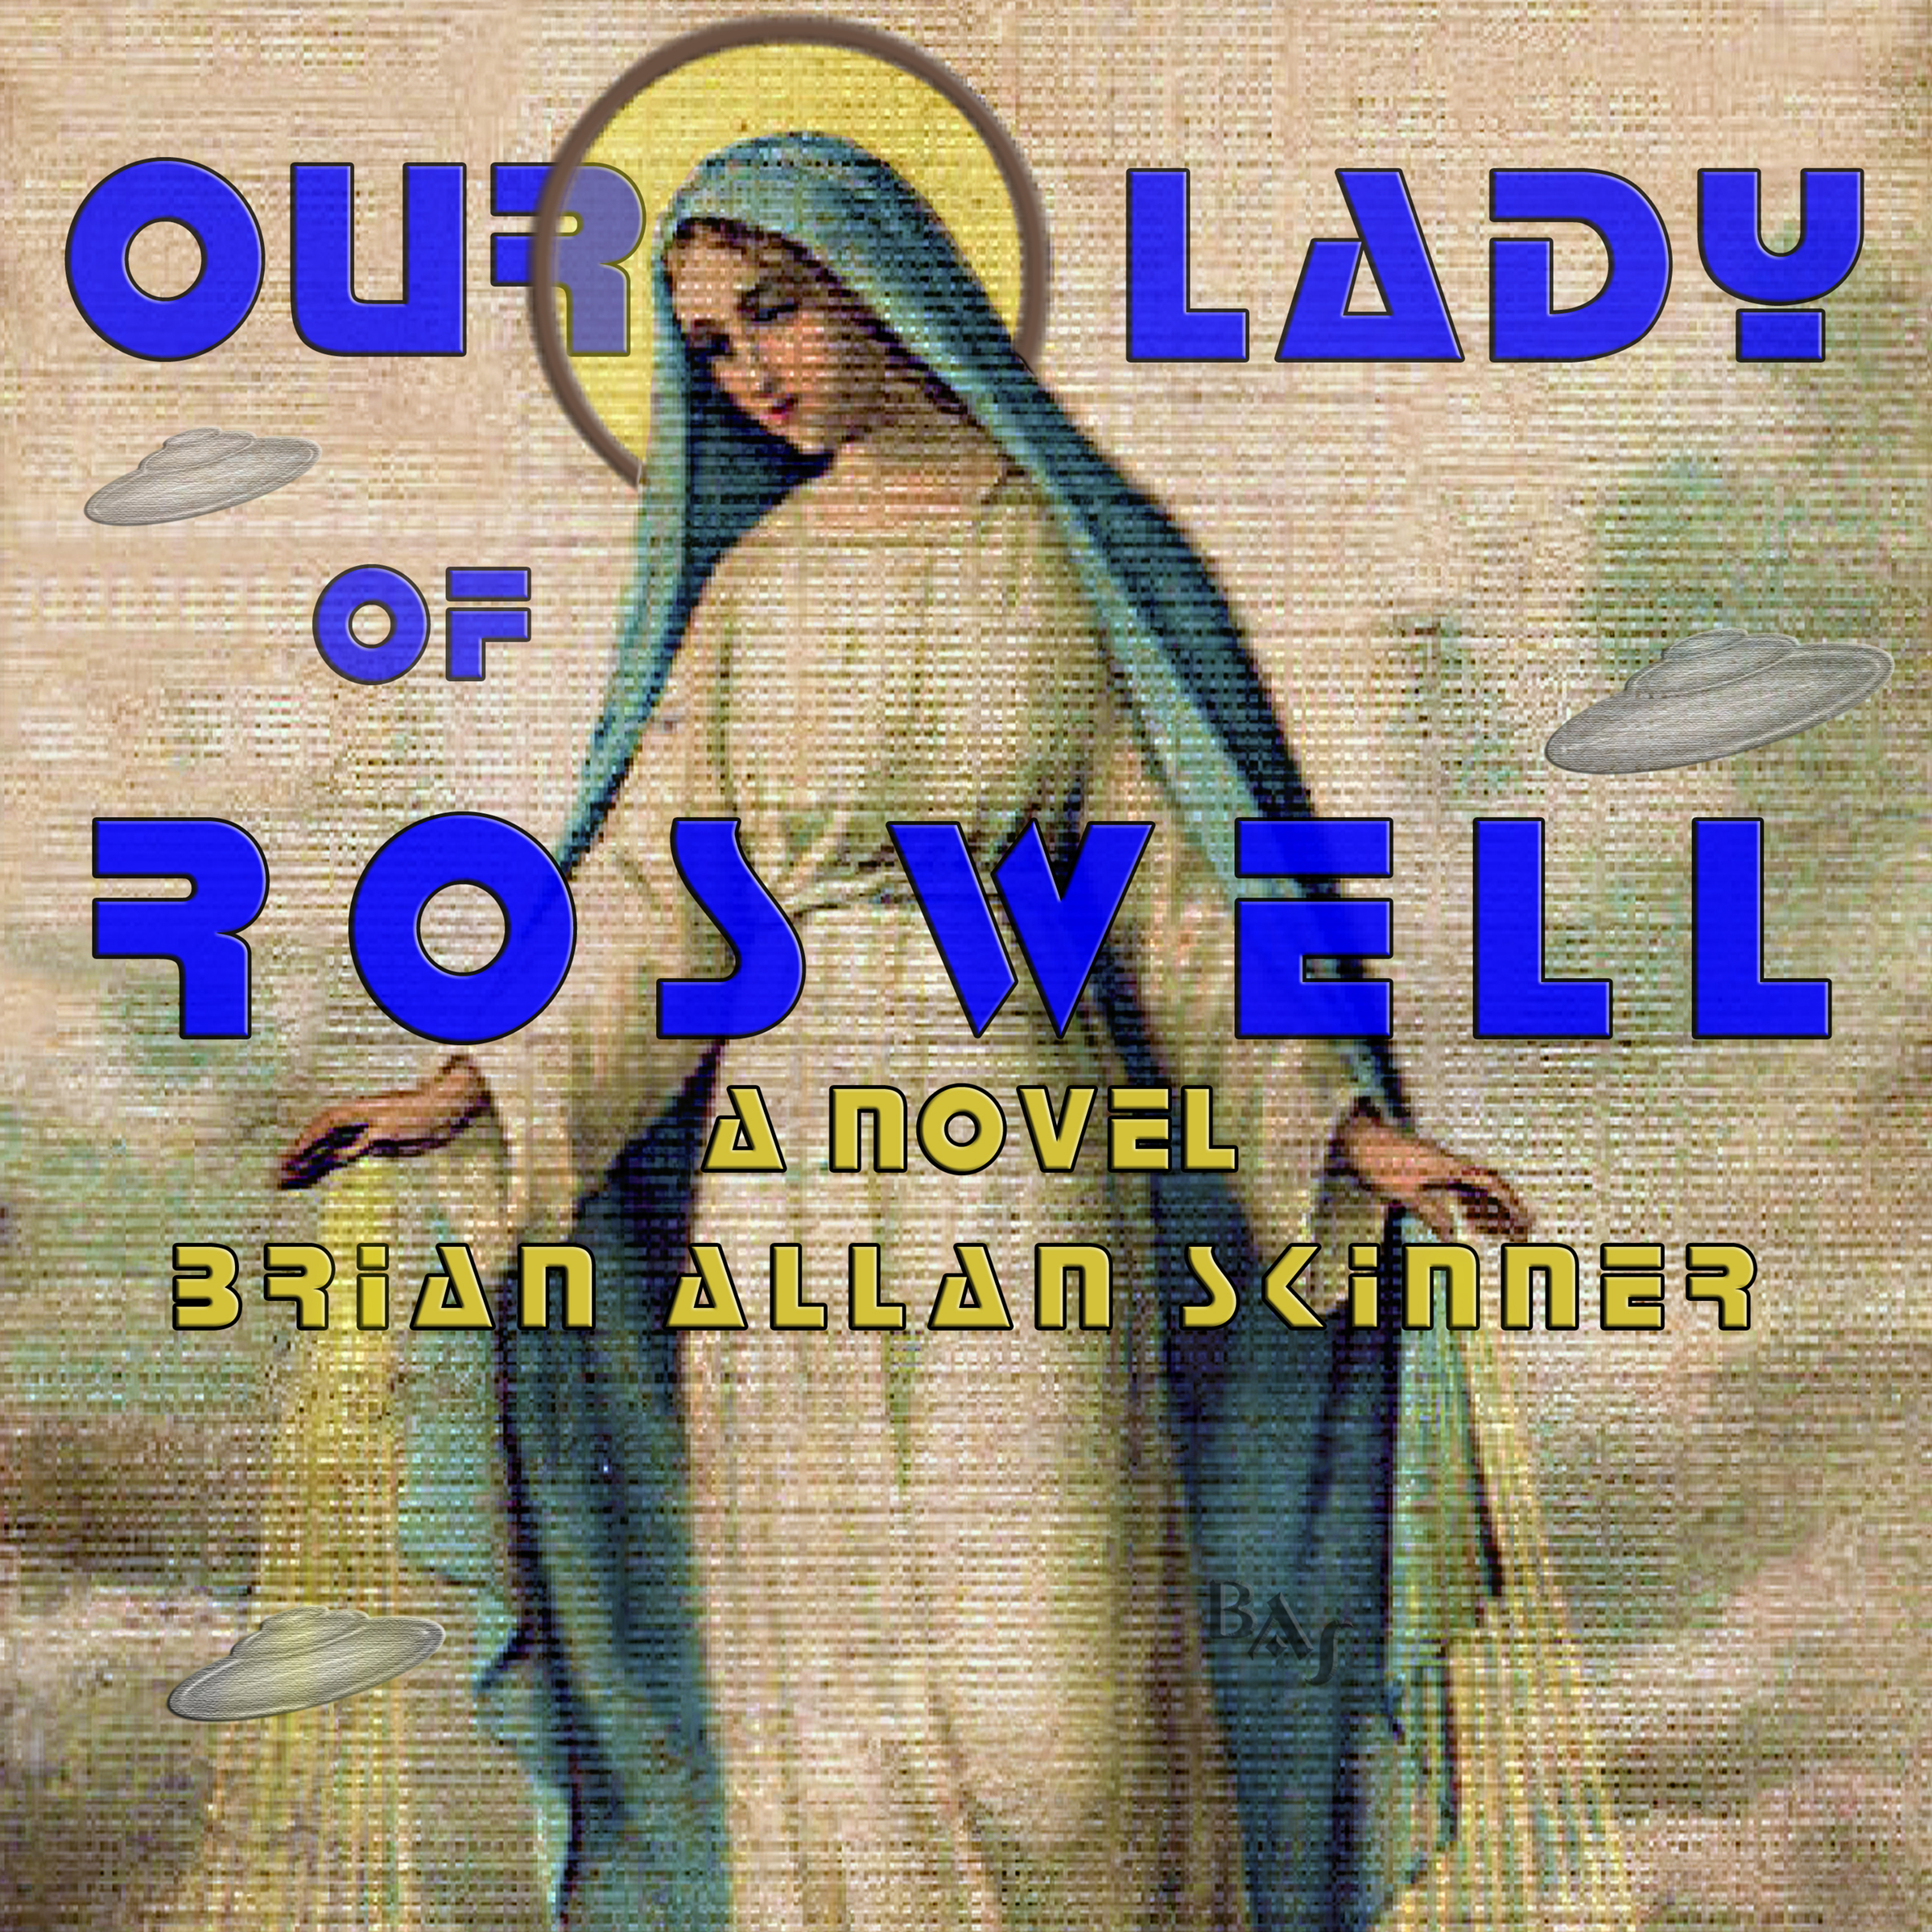 Our Lady of Roswell